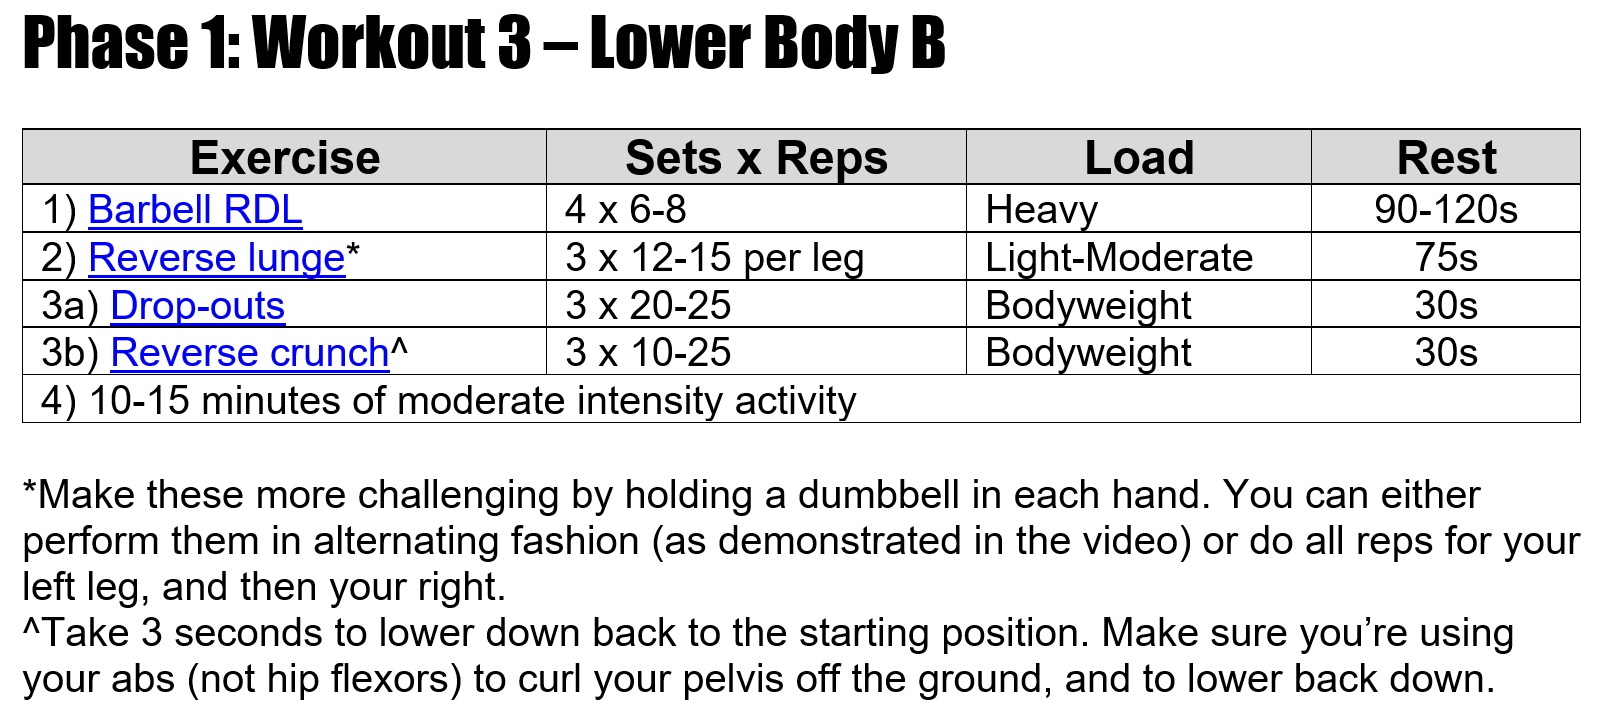 Phase 1 Workout 3